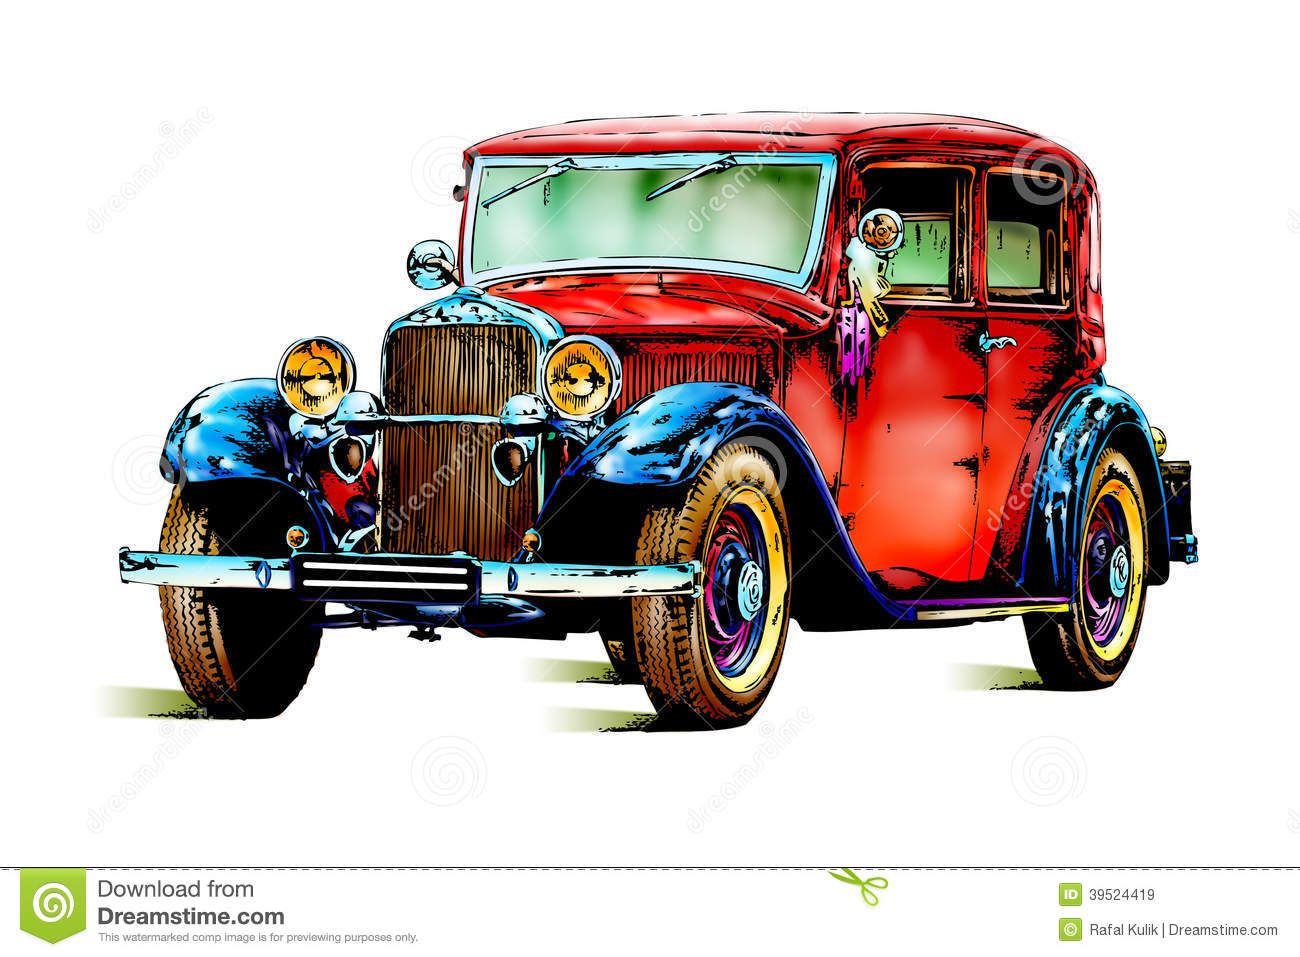 Old Classic Car Retro Vintage Download From Over 35 Million High